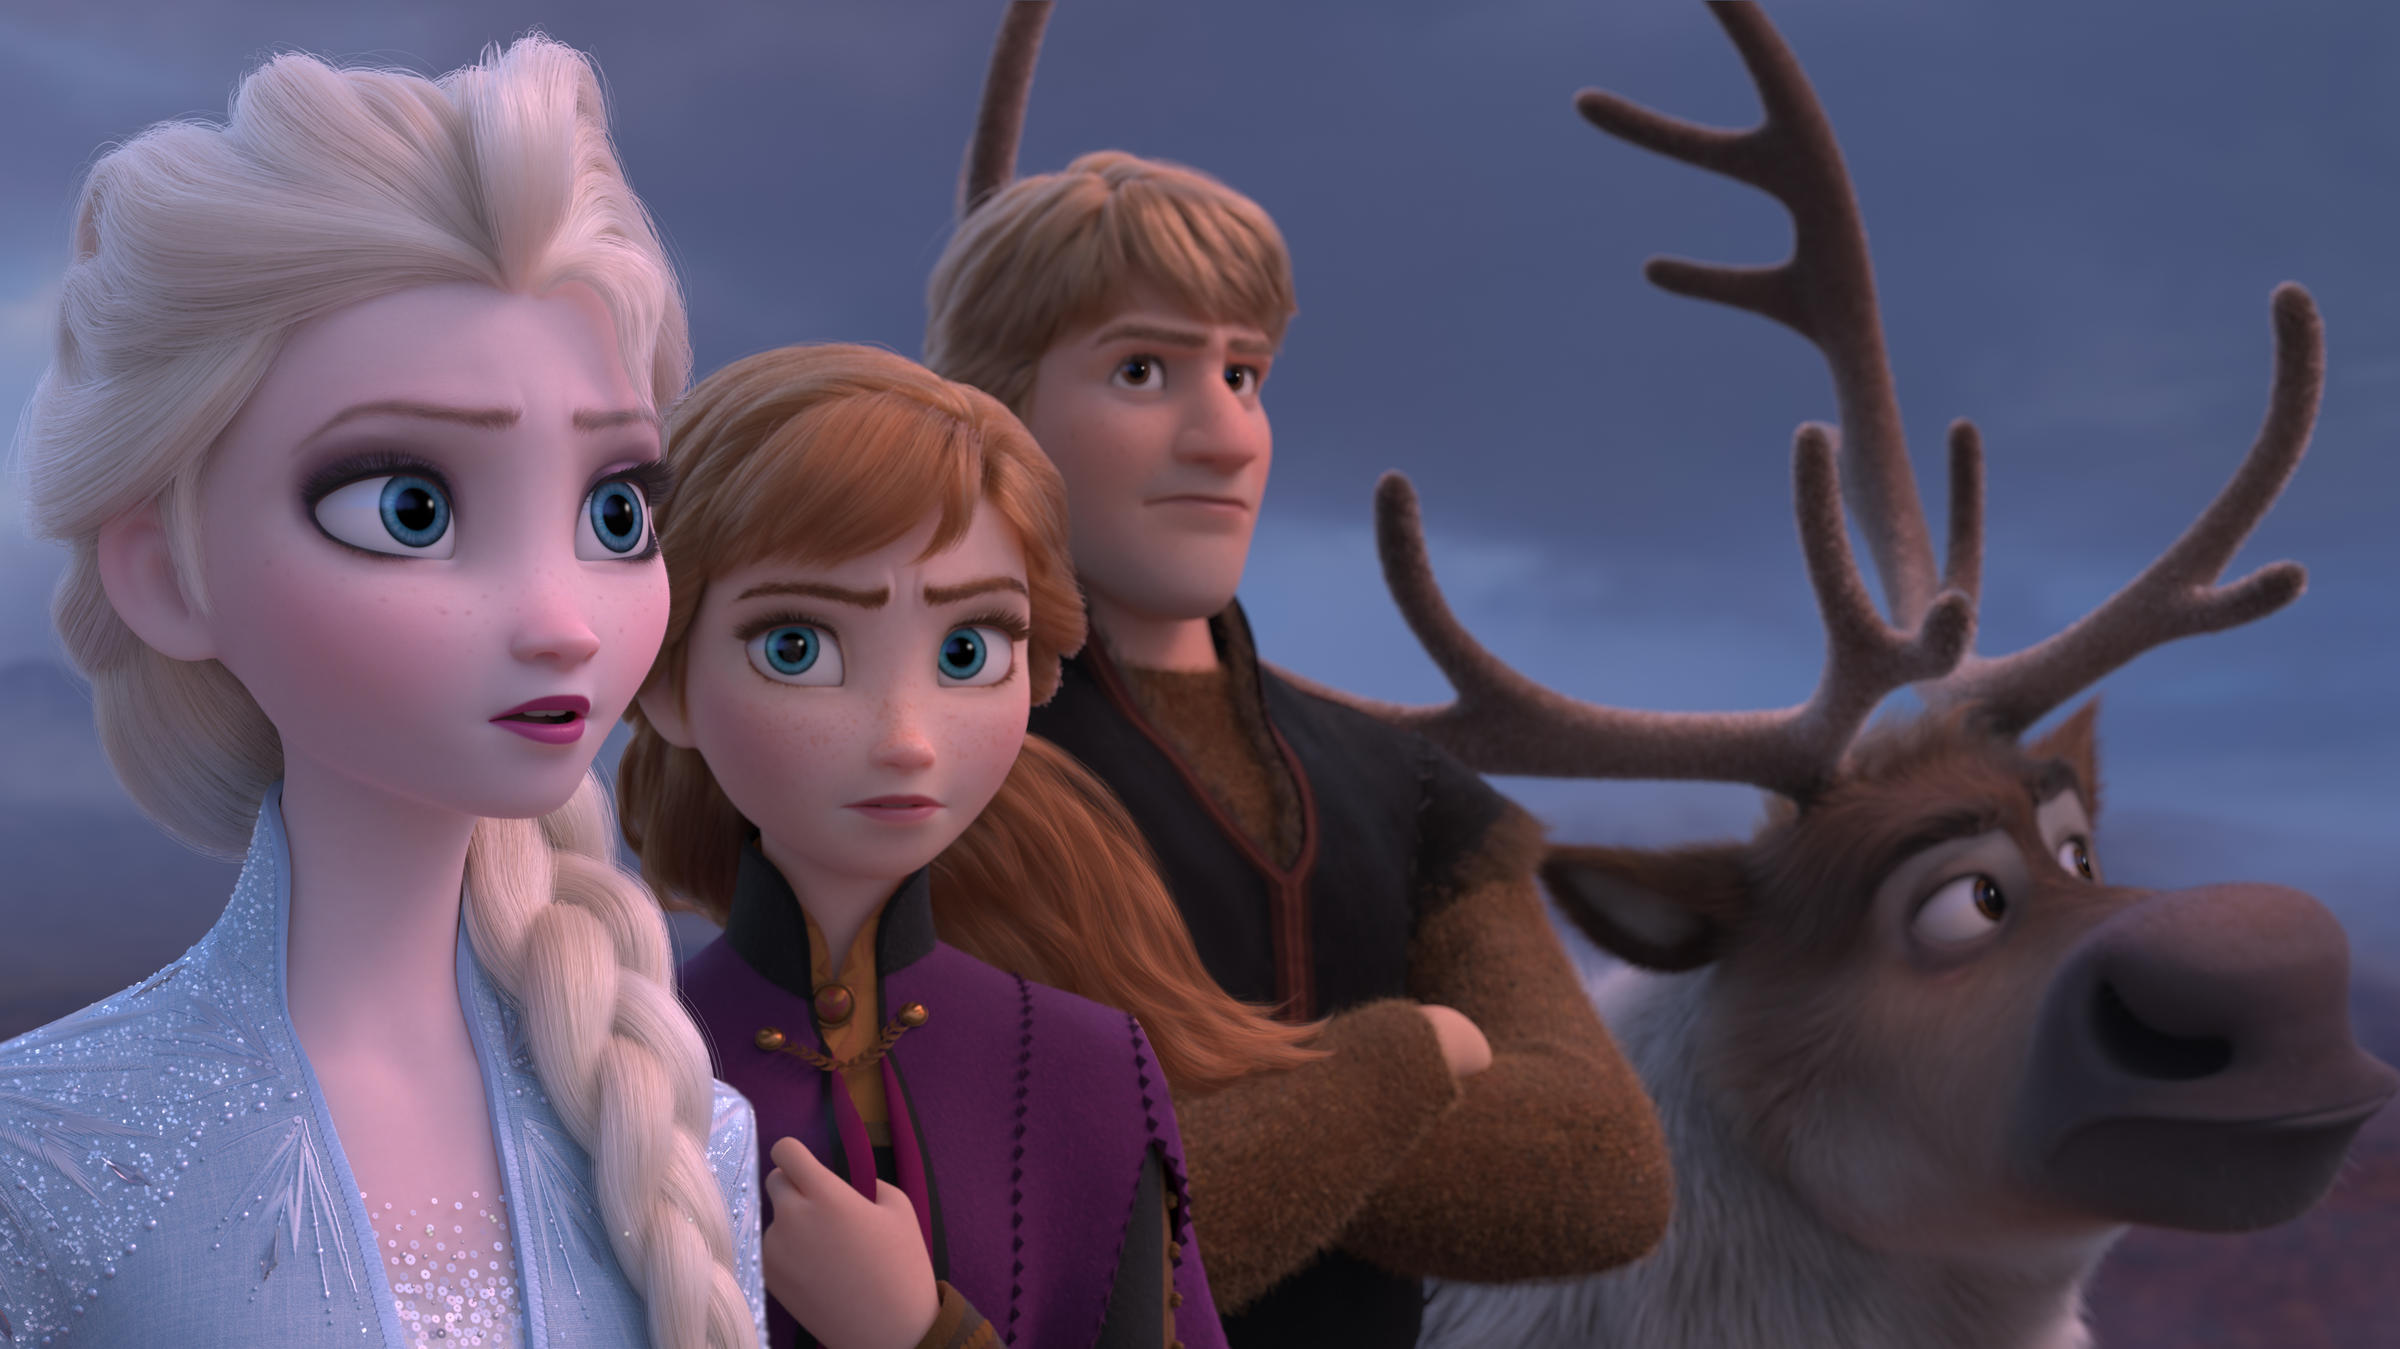 disney animation chief jennifer lee is the queen behind elsa and anna wuky